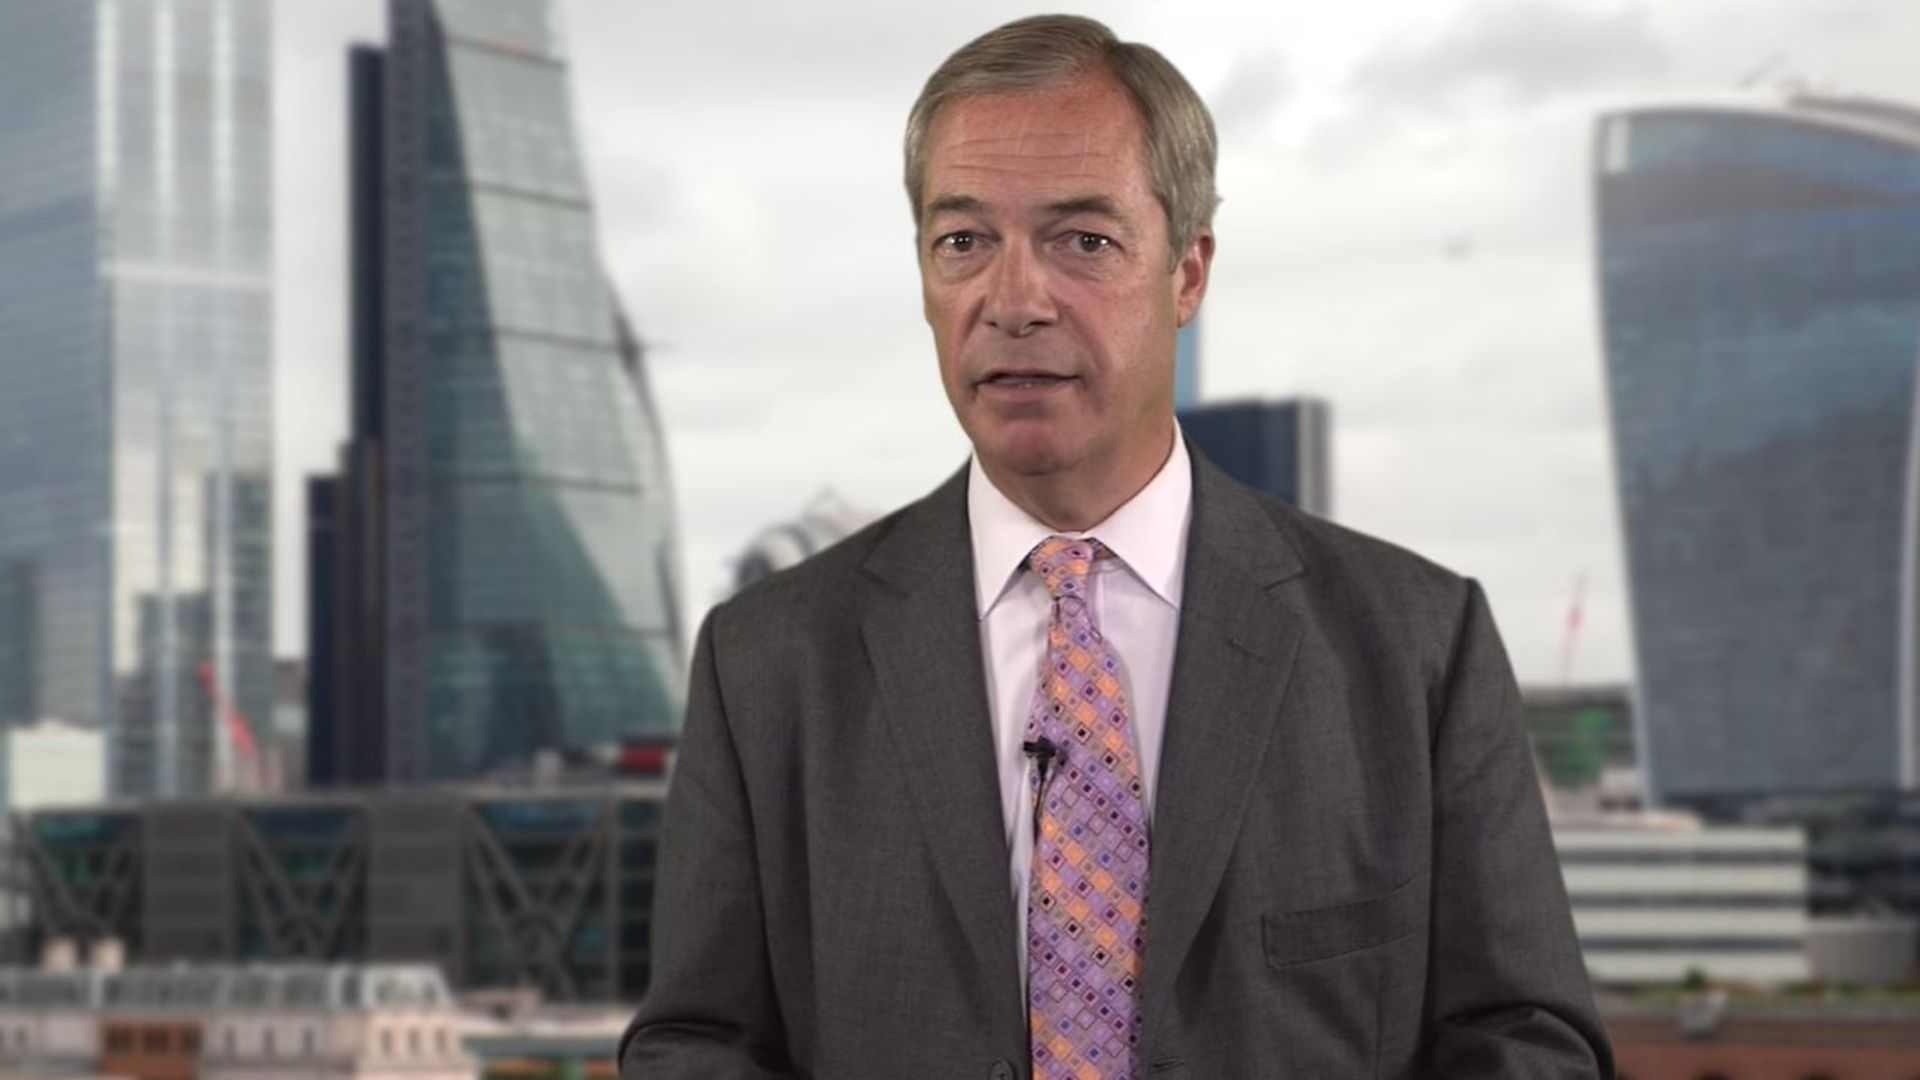 Nigel Farage in a video advert for his Fortune & Freedom investment advice service - Credit: Archant